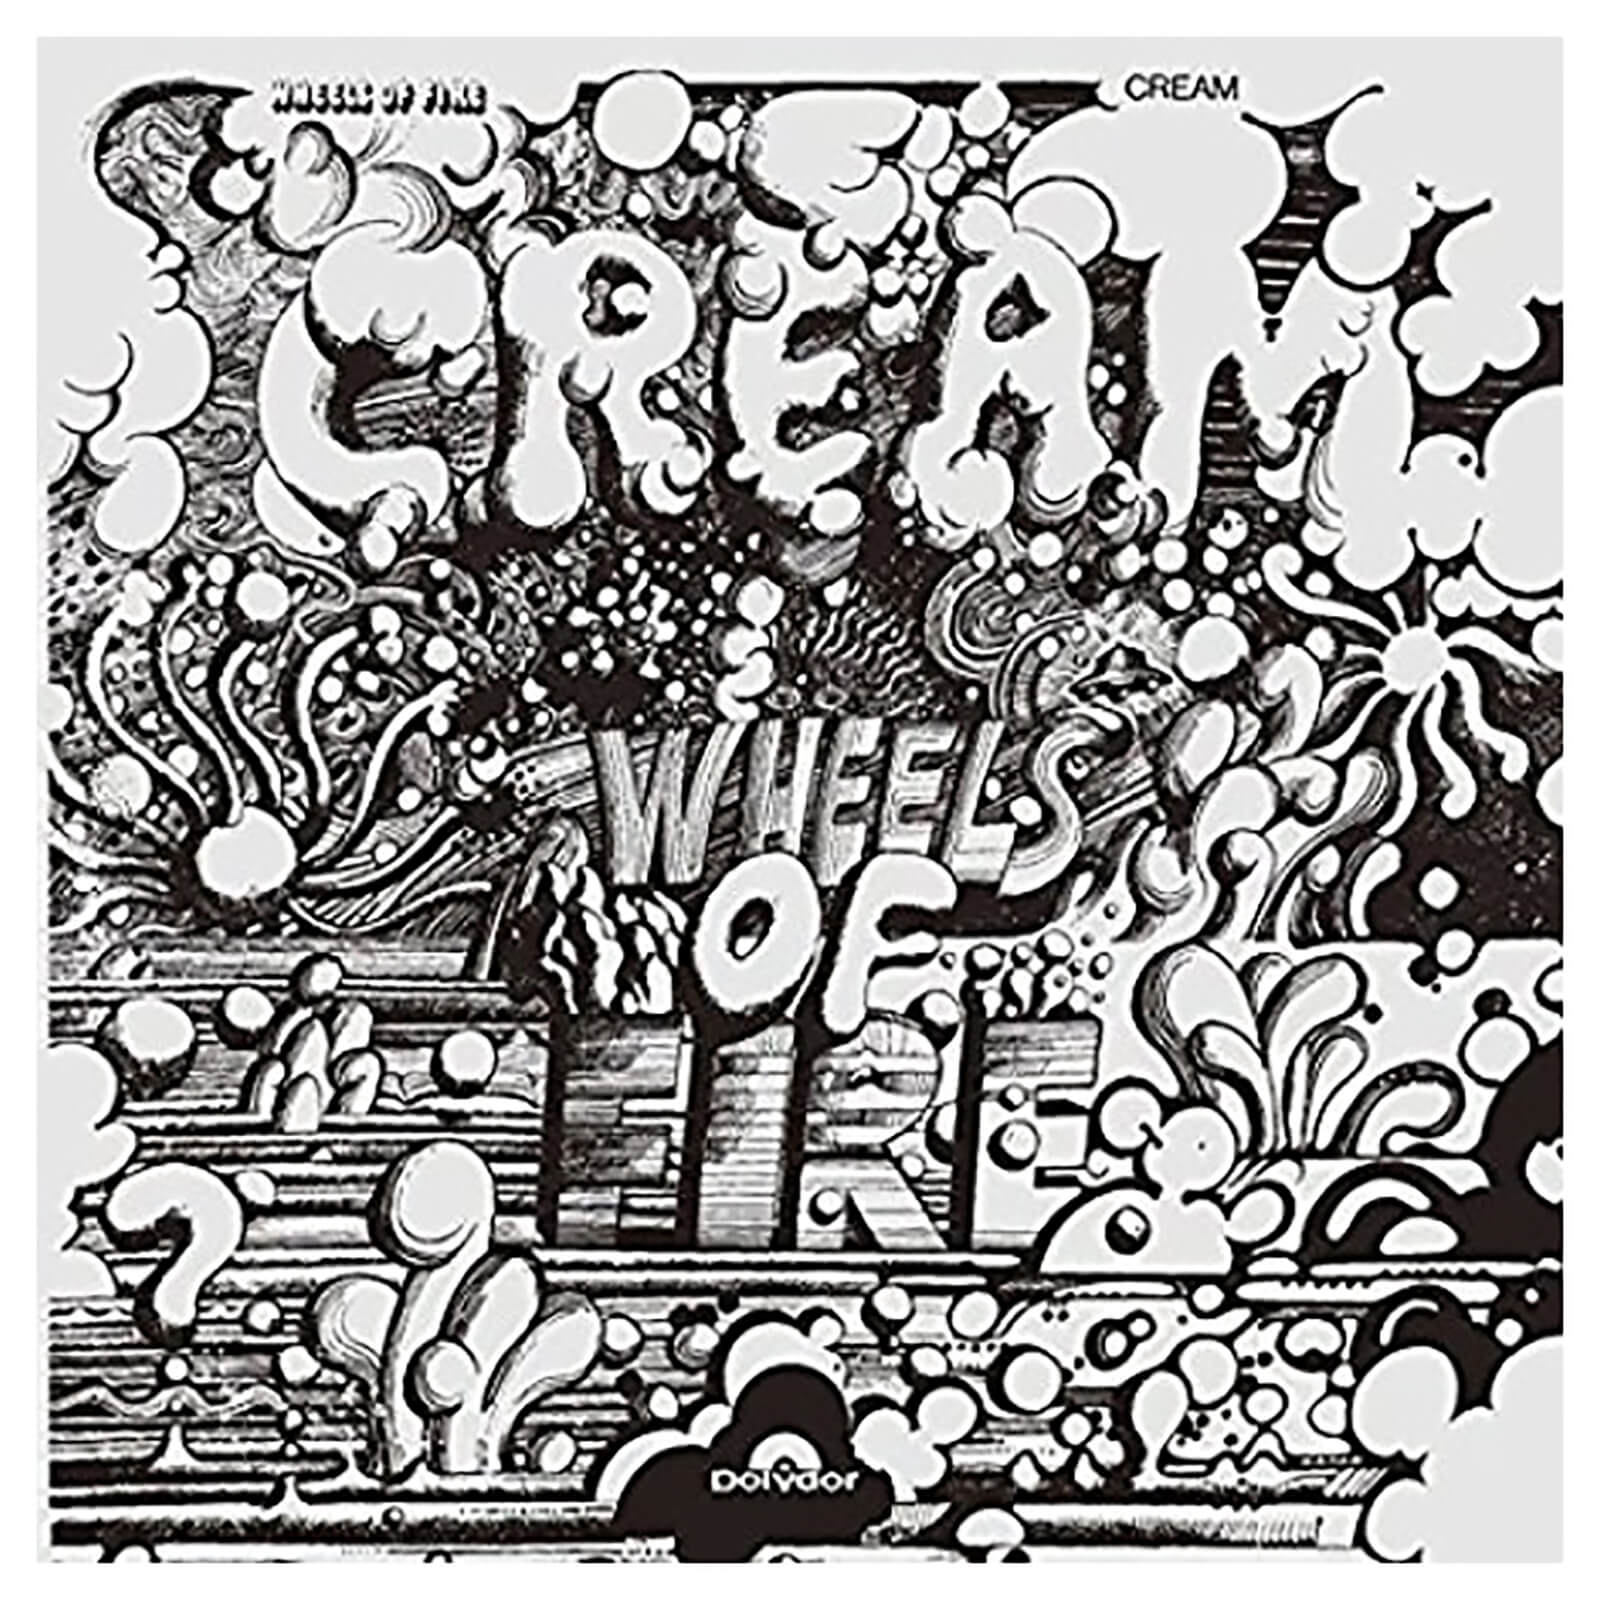 Cream - Wheels Of Fire - Vinyl